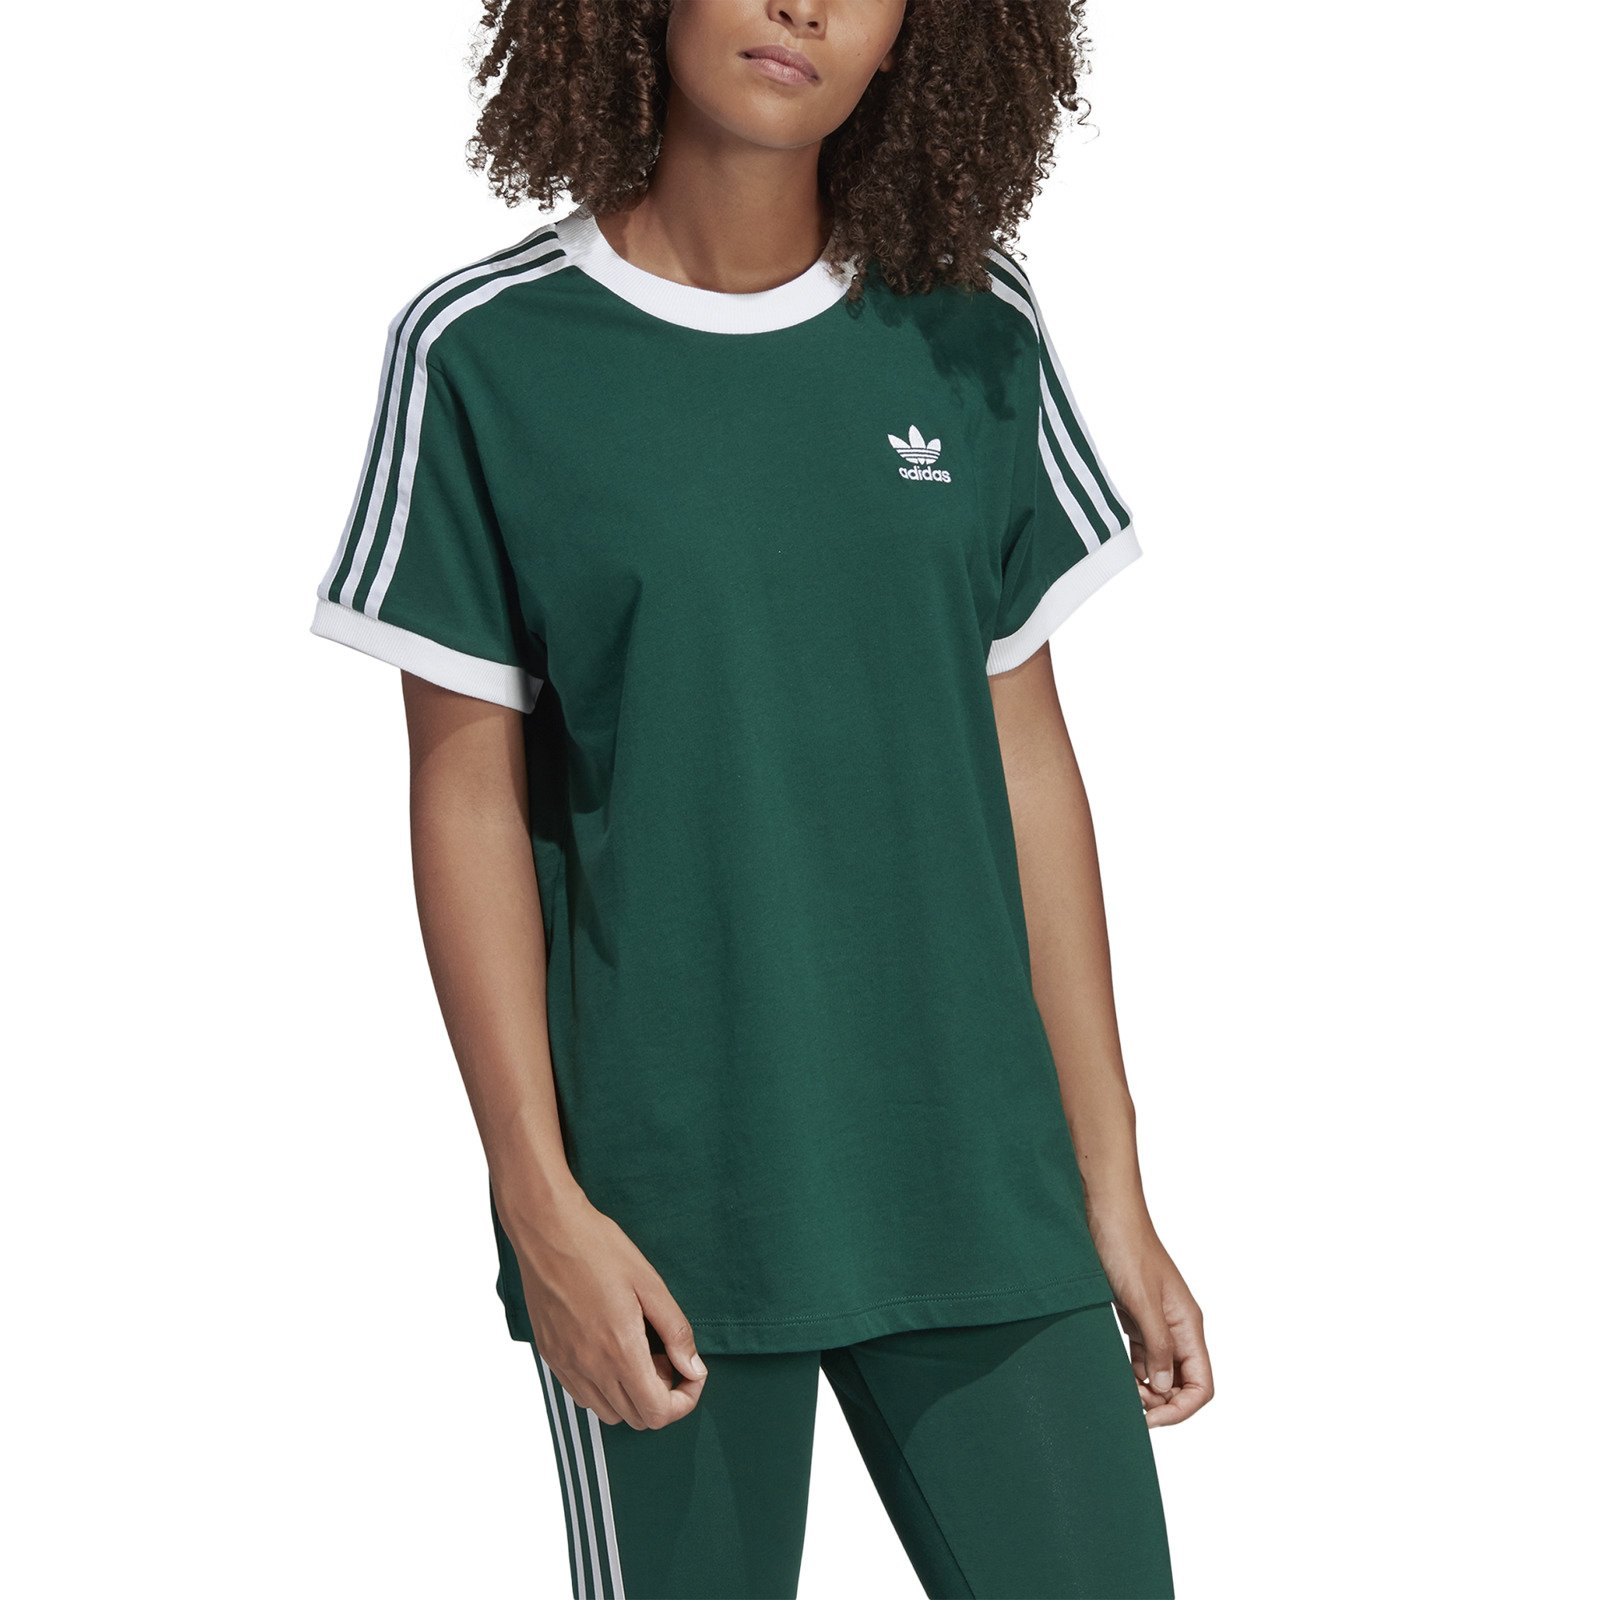 Women's T-Shirt adidas Originals 3 Stripes DV2590 - Best ...